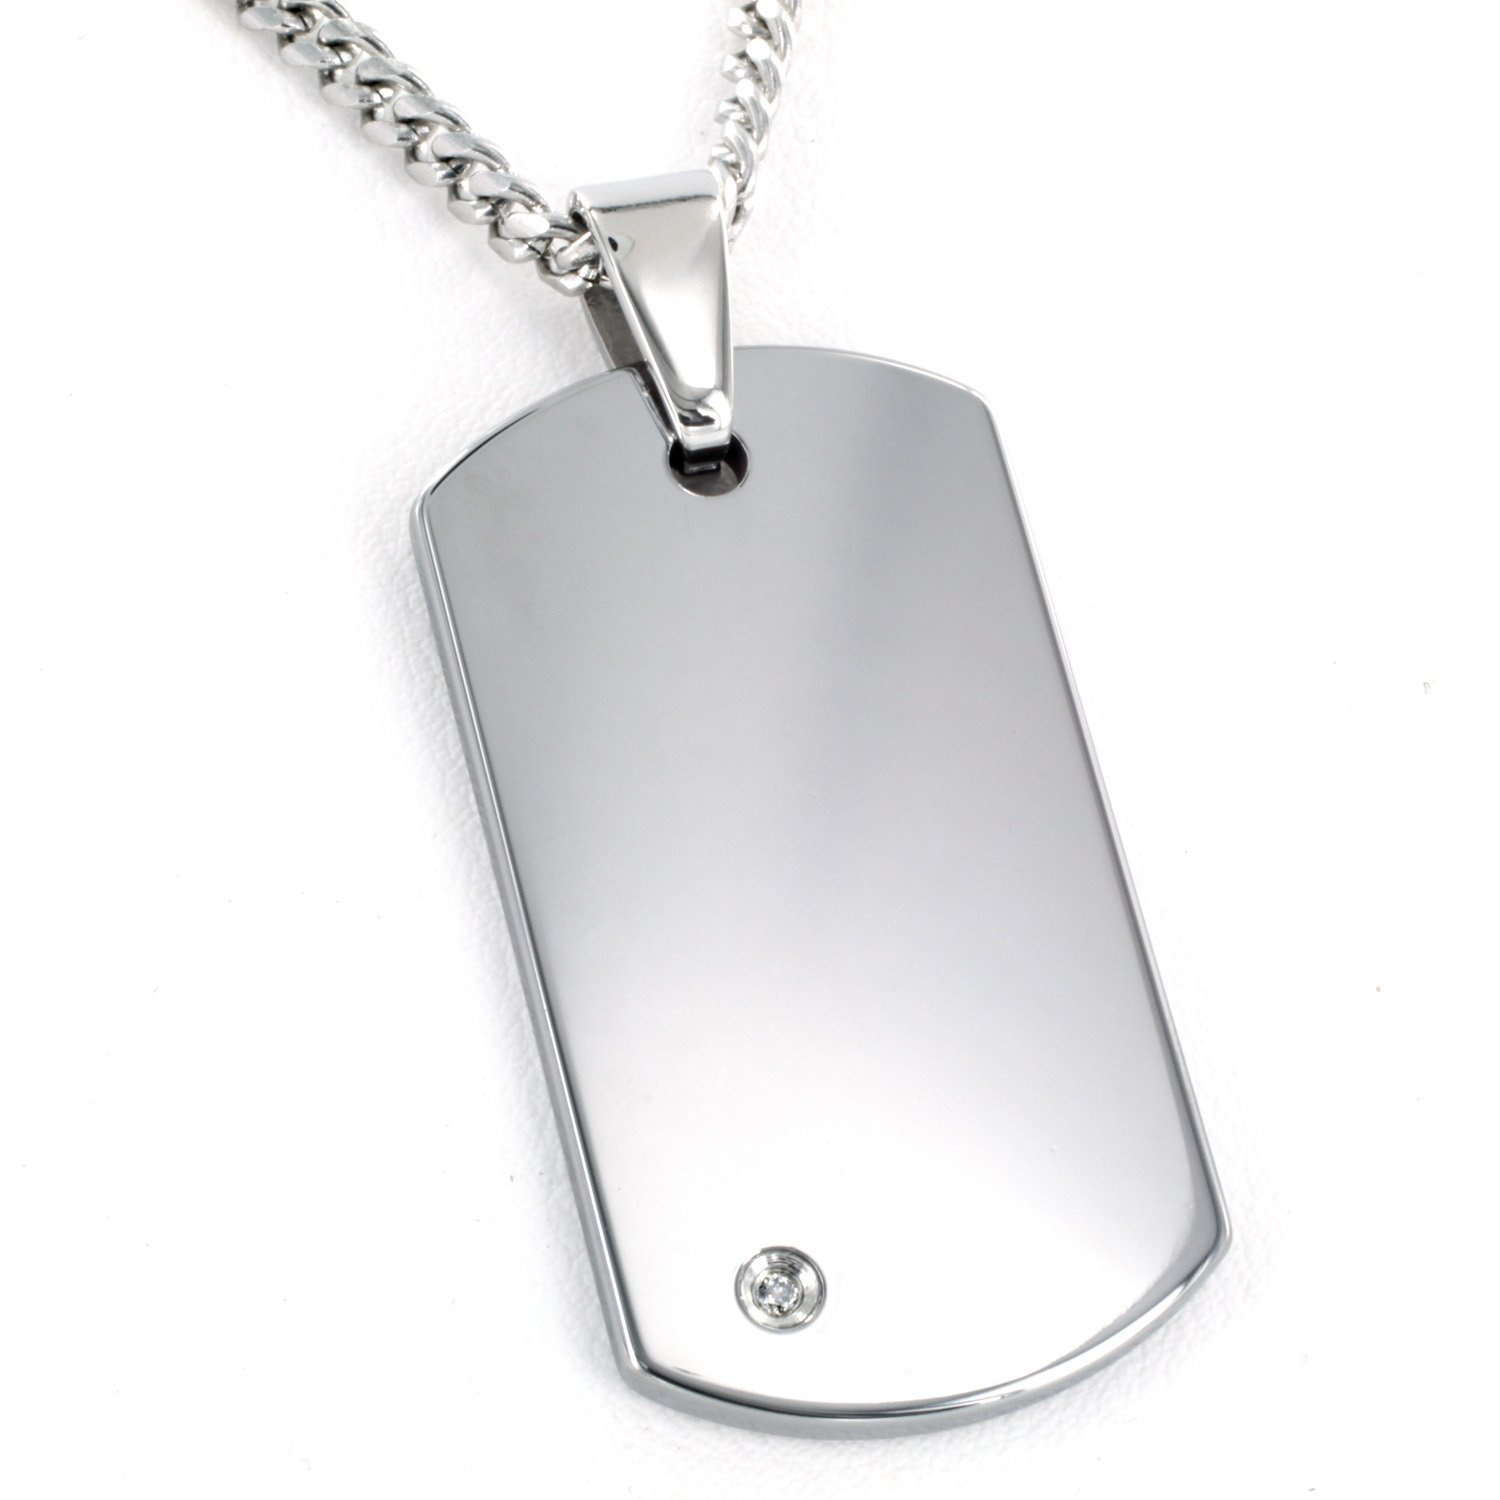 Amazon crucible tungsten carbide diamond dog tag pendant curb amazon crucible tungsten carbide diamond dog tag pendant curb chain necklace 24 jewelry aloadofball Gallery